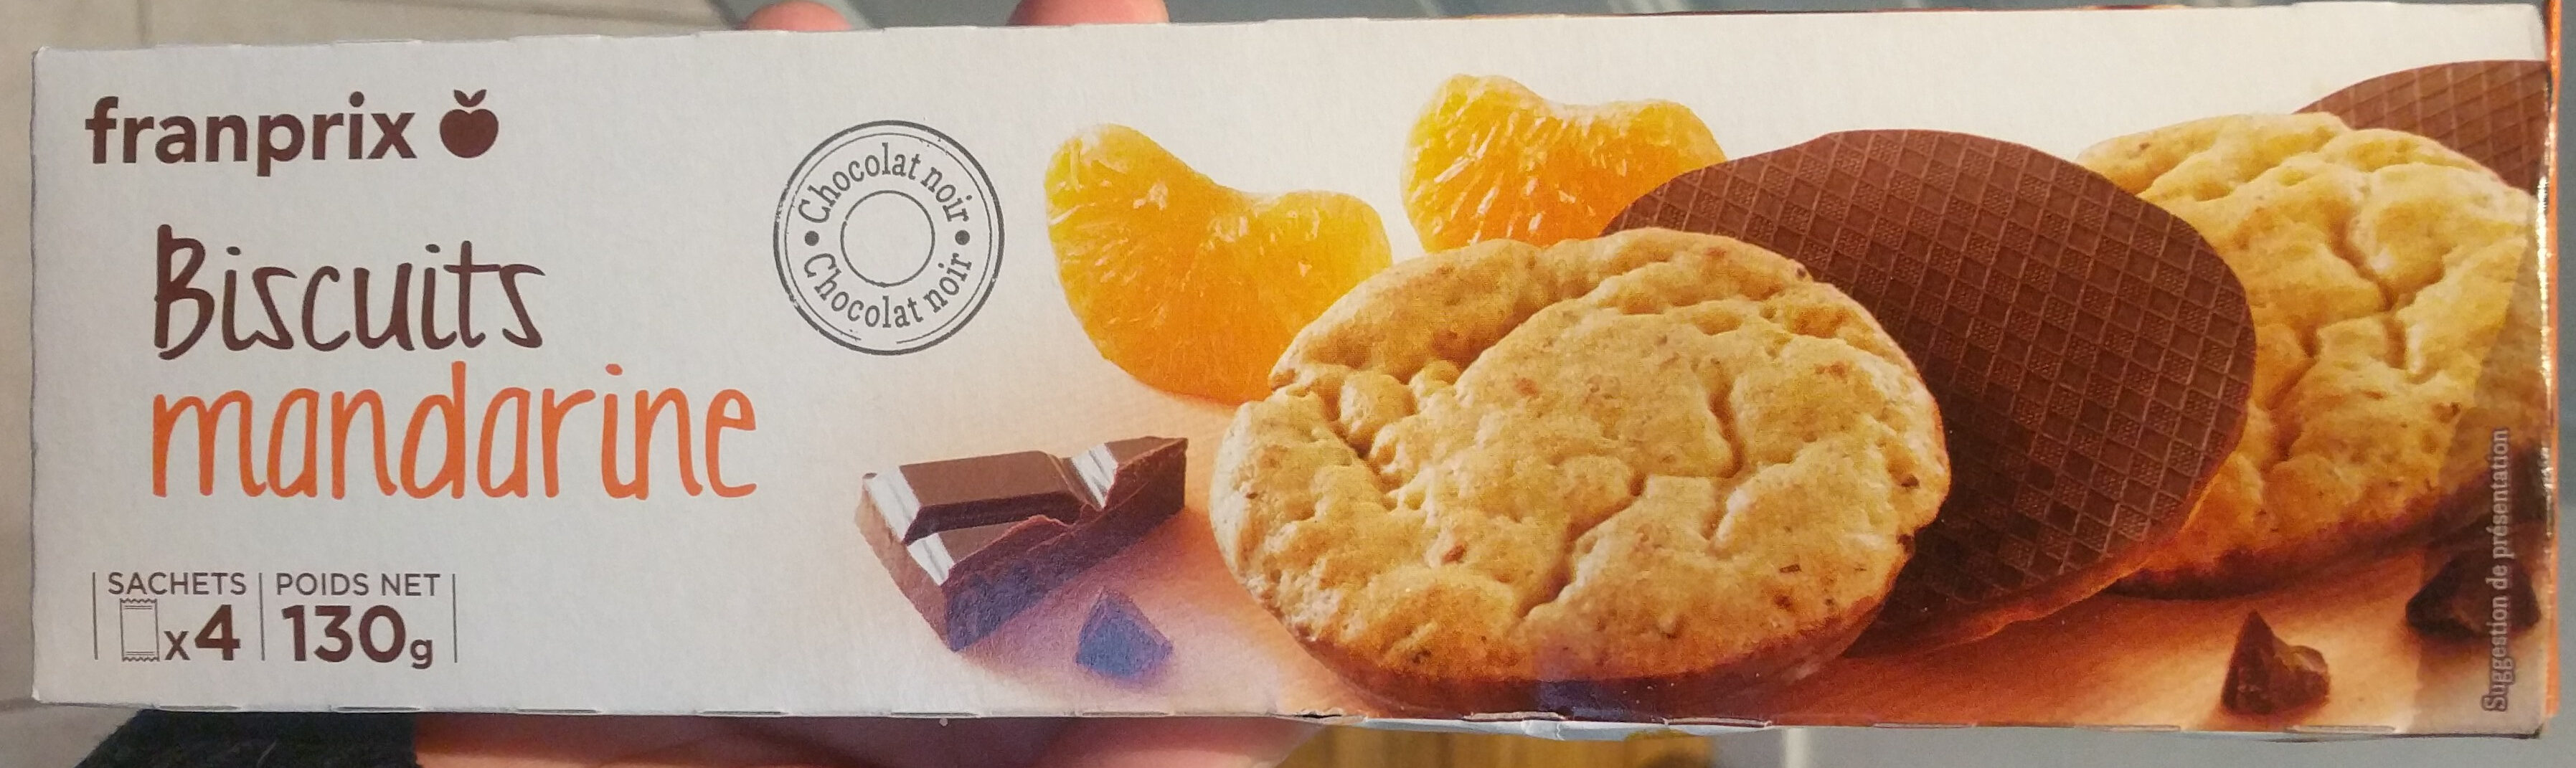 Biscuits Mandarine - Product - fr